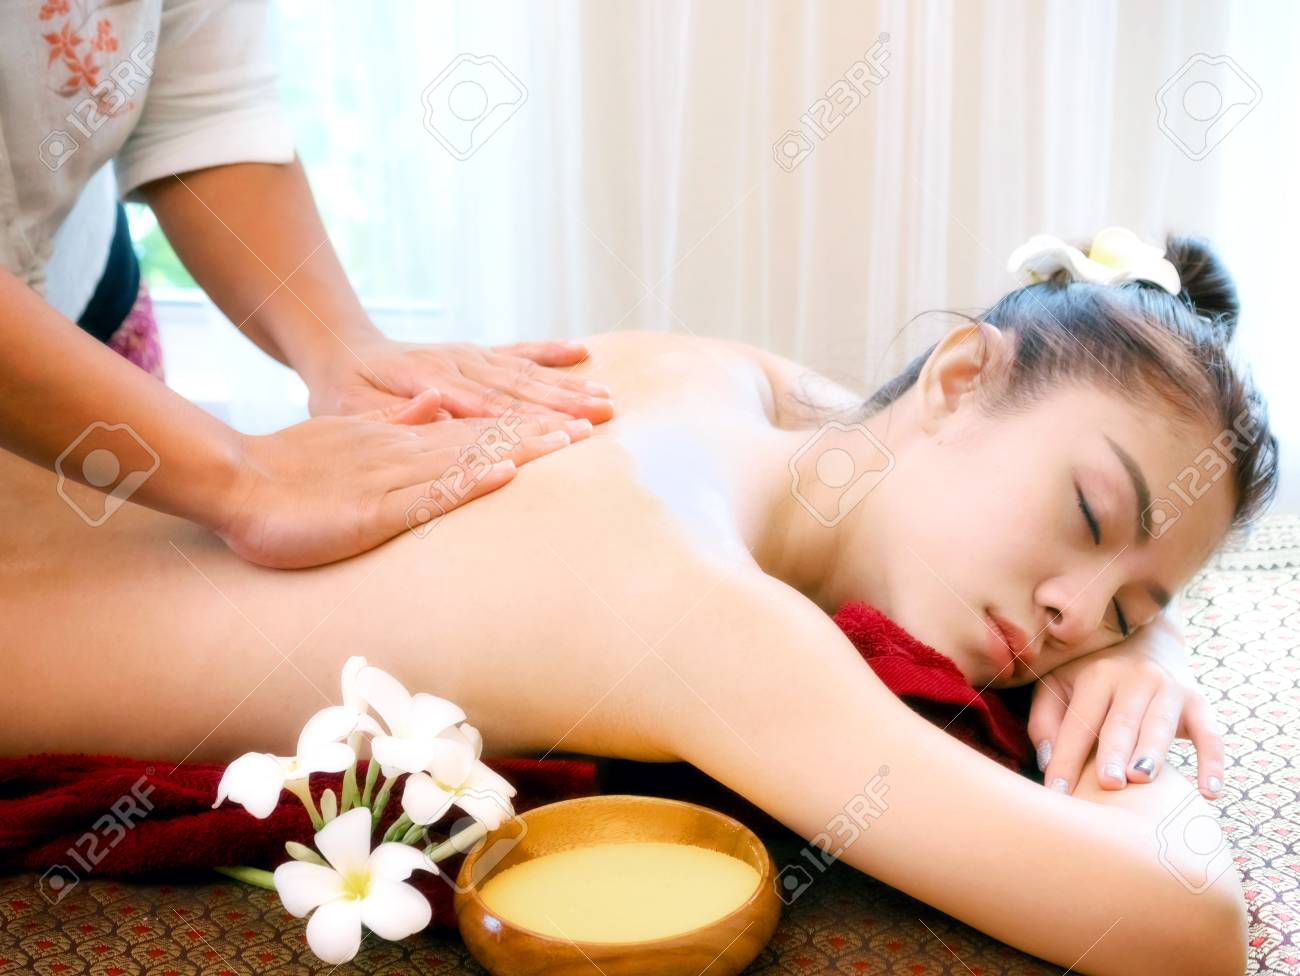 Salon Massage Body Body Woman Having Spa Body Massage Treatment In The Spa Salon Massage